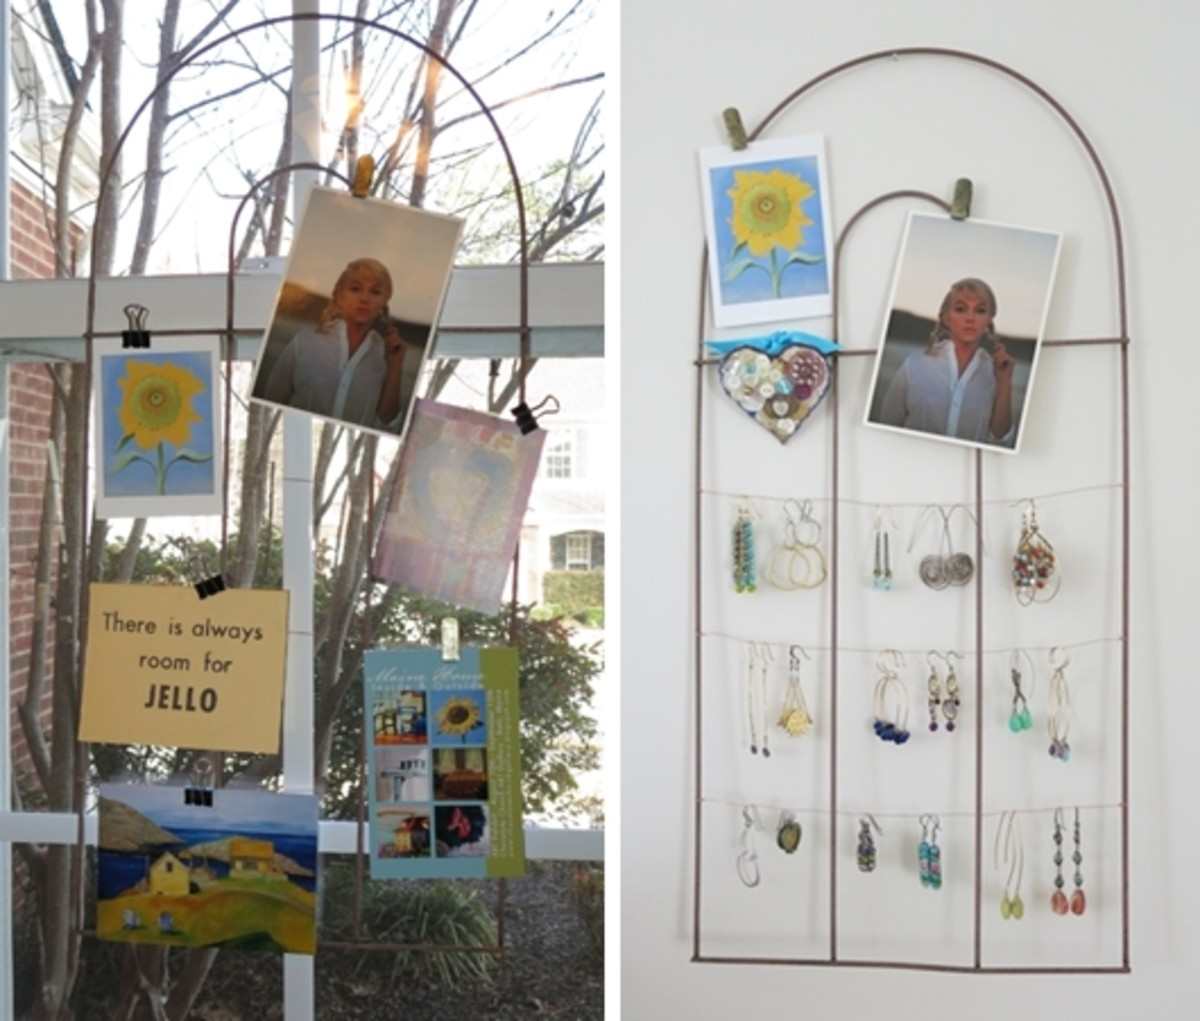 recycle a simple garden fence into a bulletin board or jewelry organizer for your wall or window